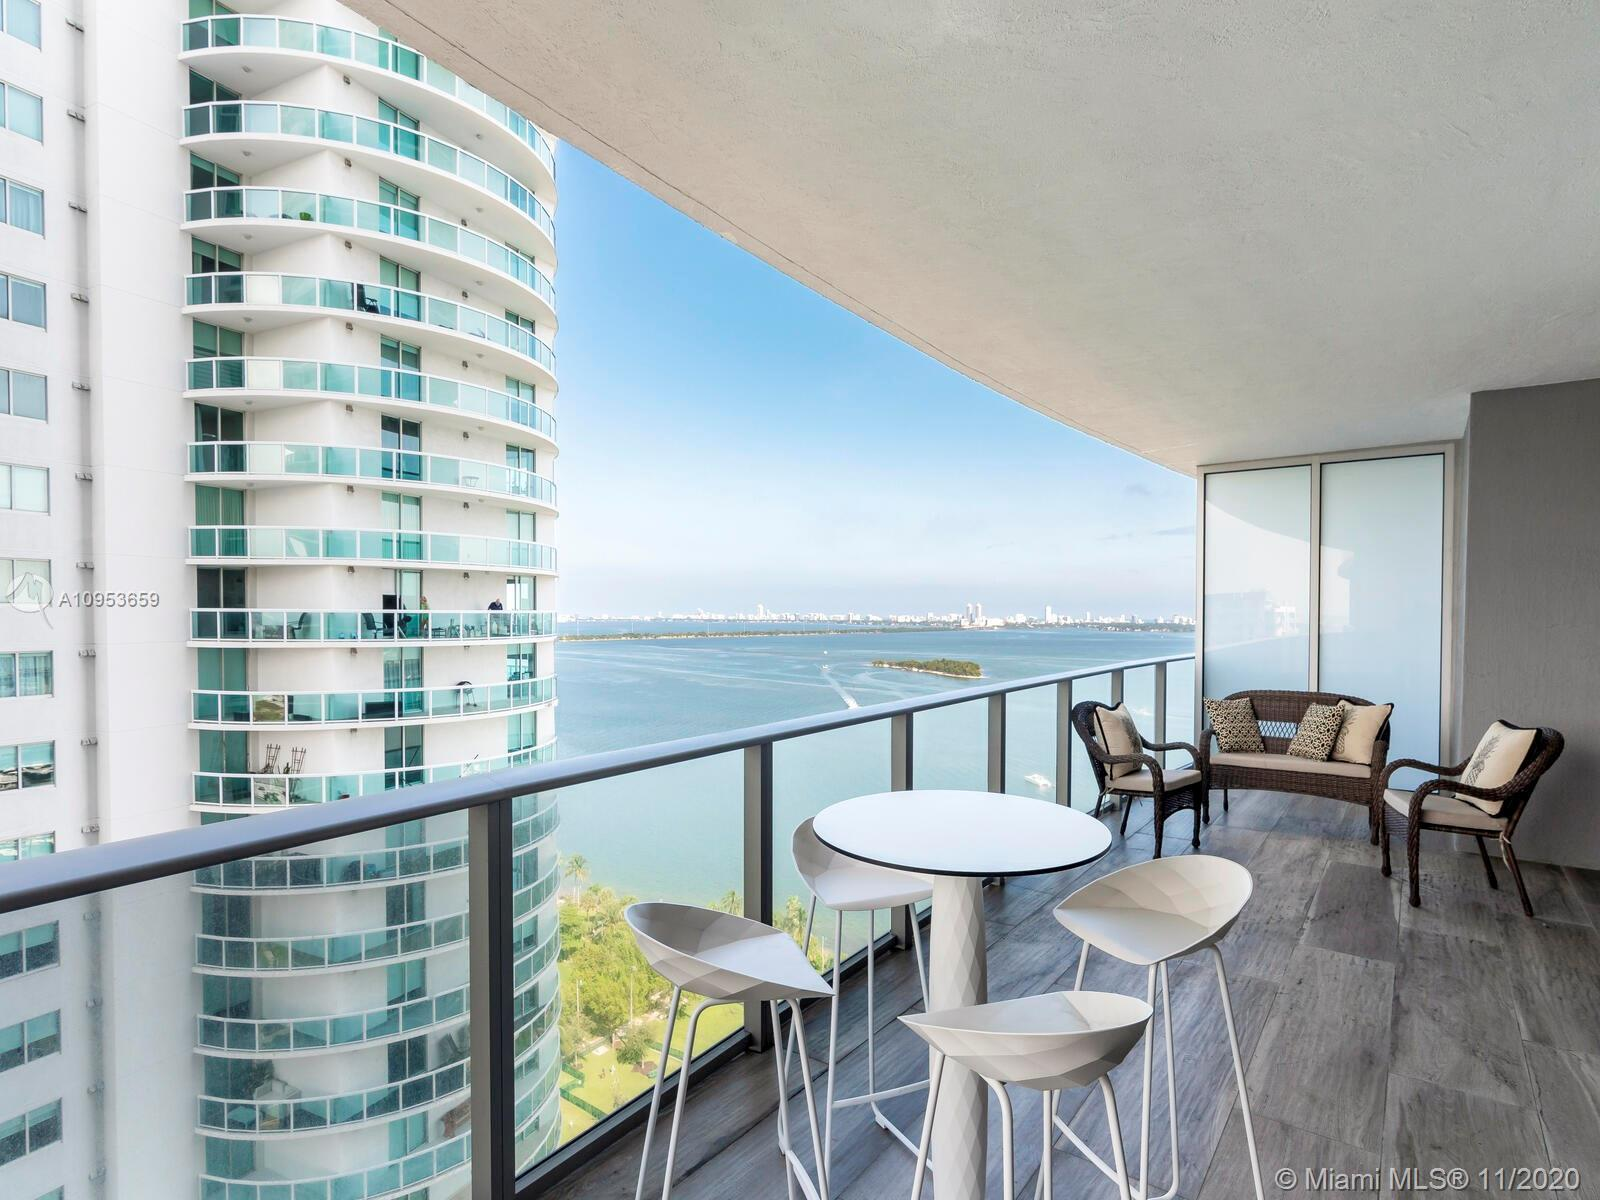 Beautiful 2 Bedrooms + Den with full 3 bathrooms, private foyer and wrap around balcony with view on